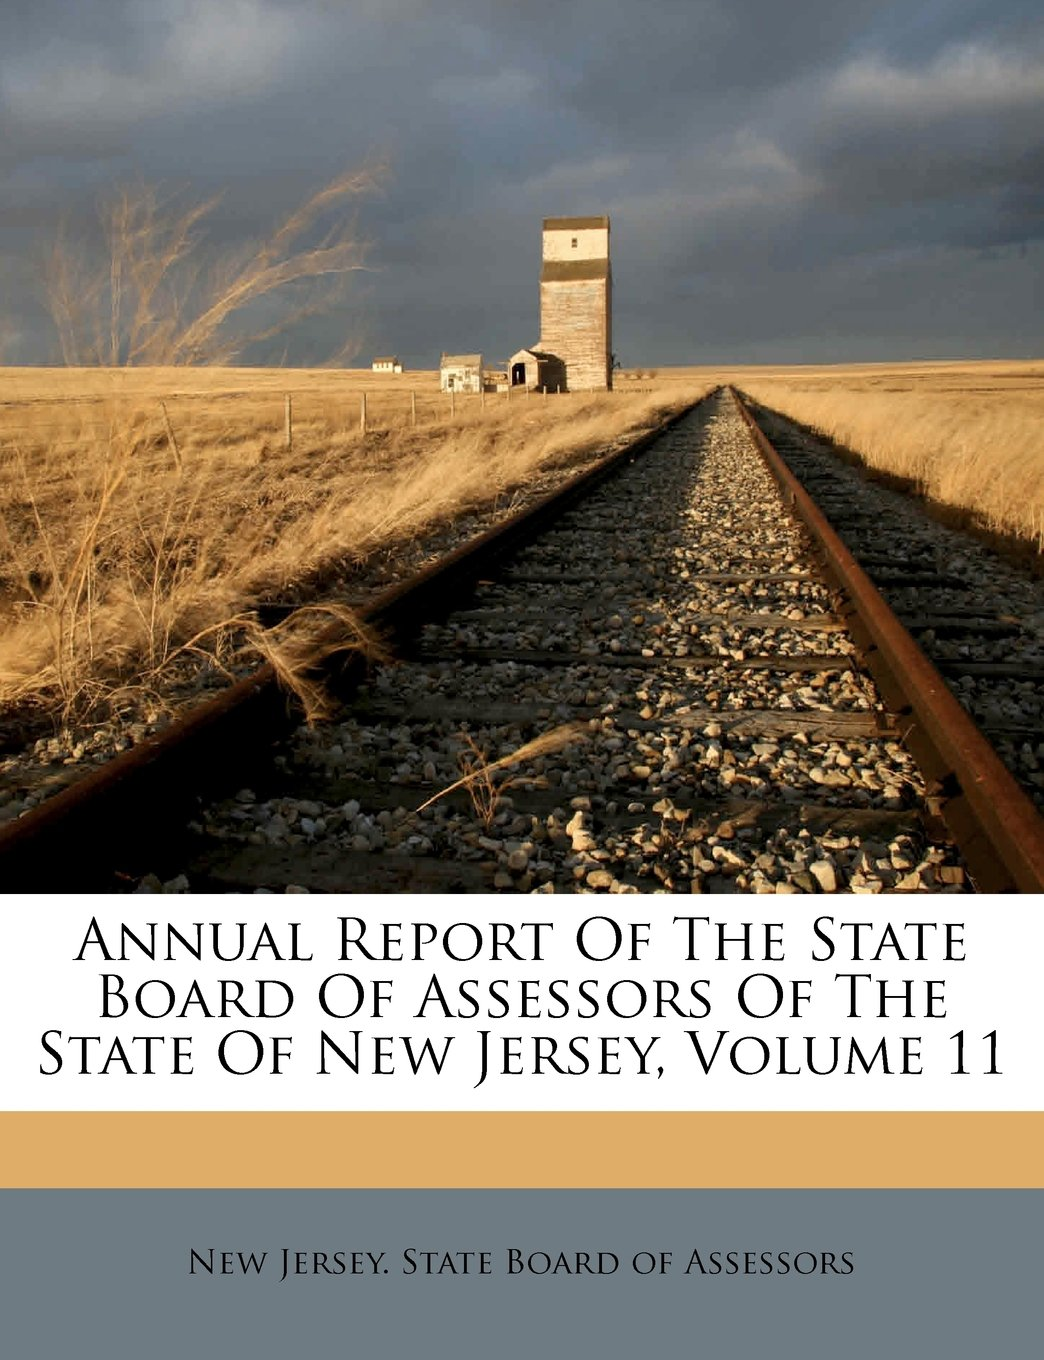 Download Annual Report Of The State Board Of Assessors Of The State Of New Jersey, Volume 11 PDF